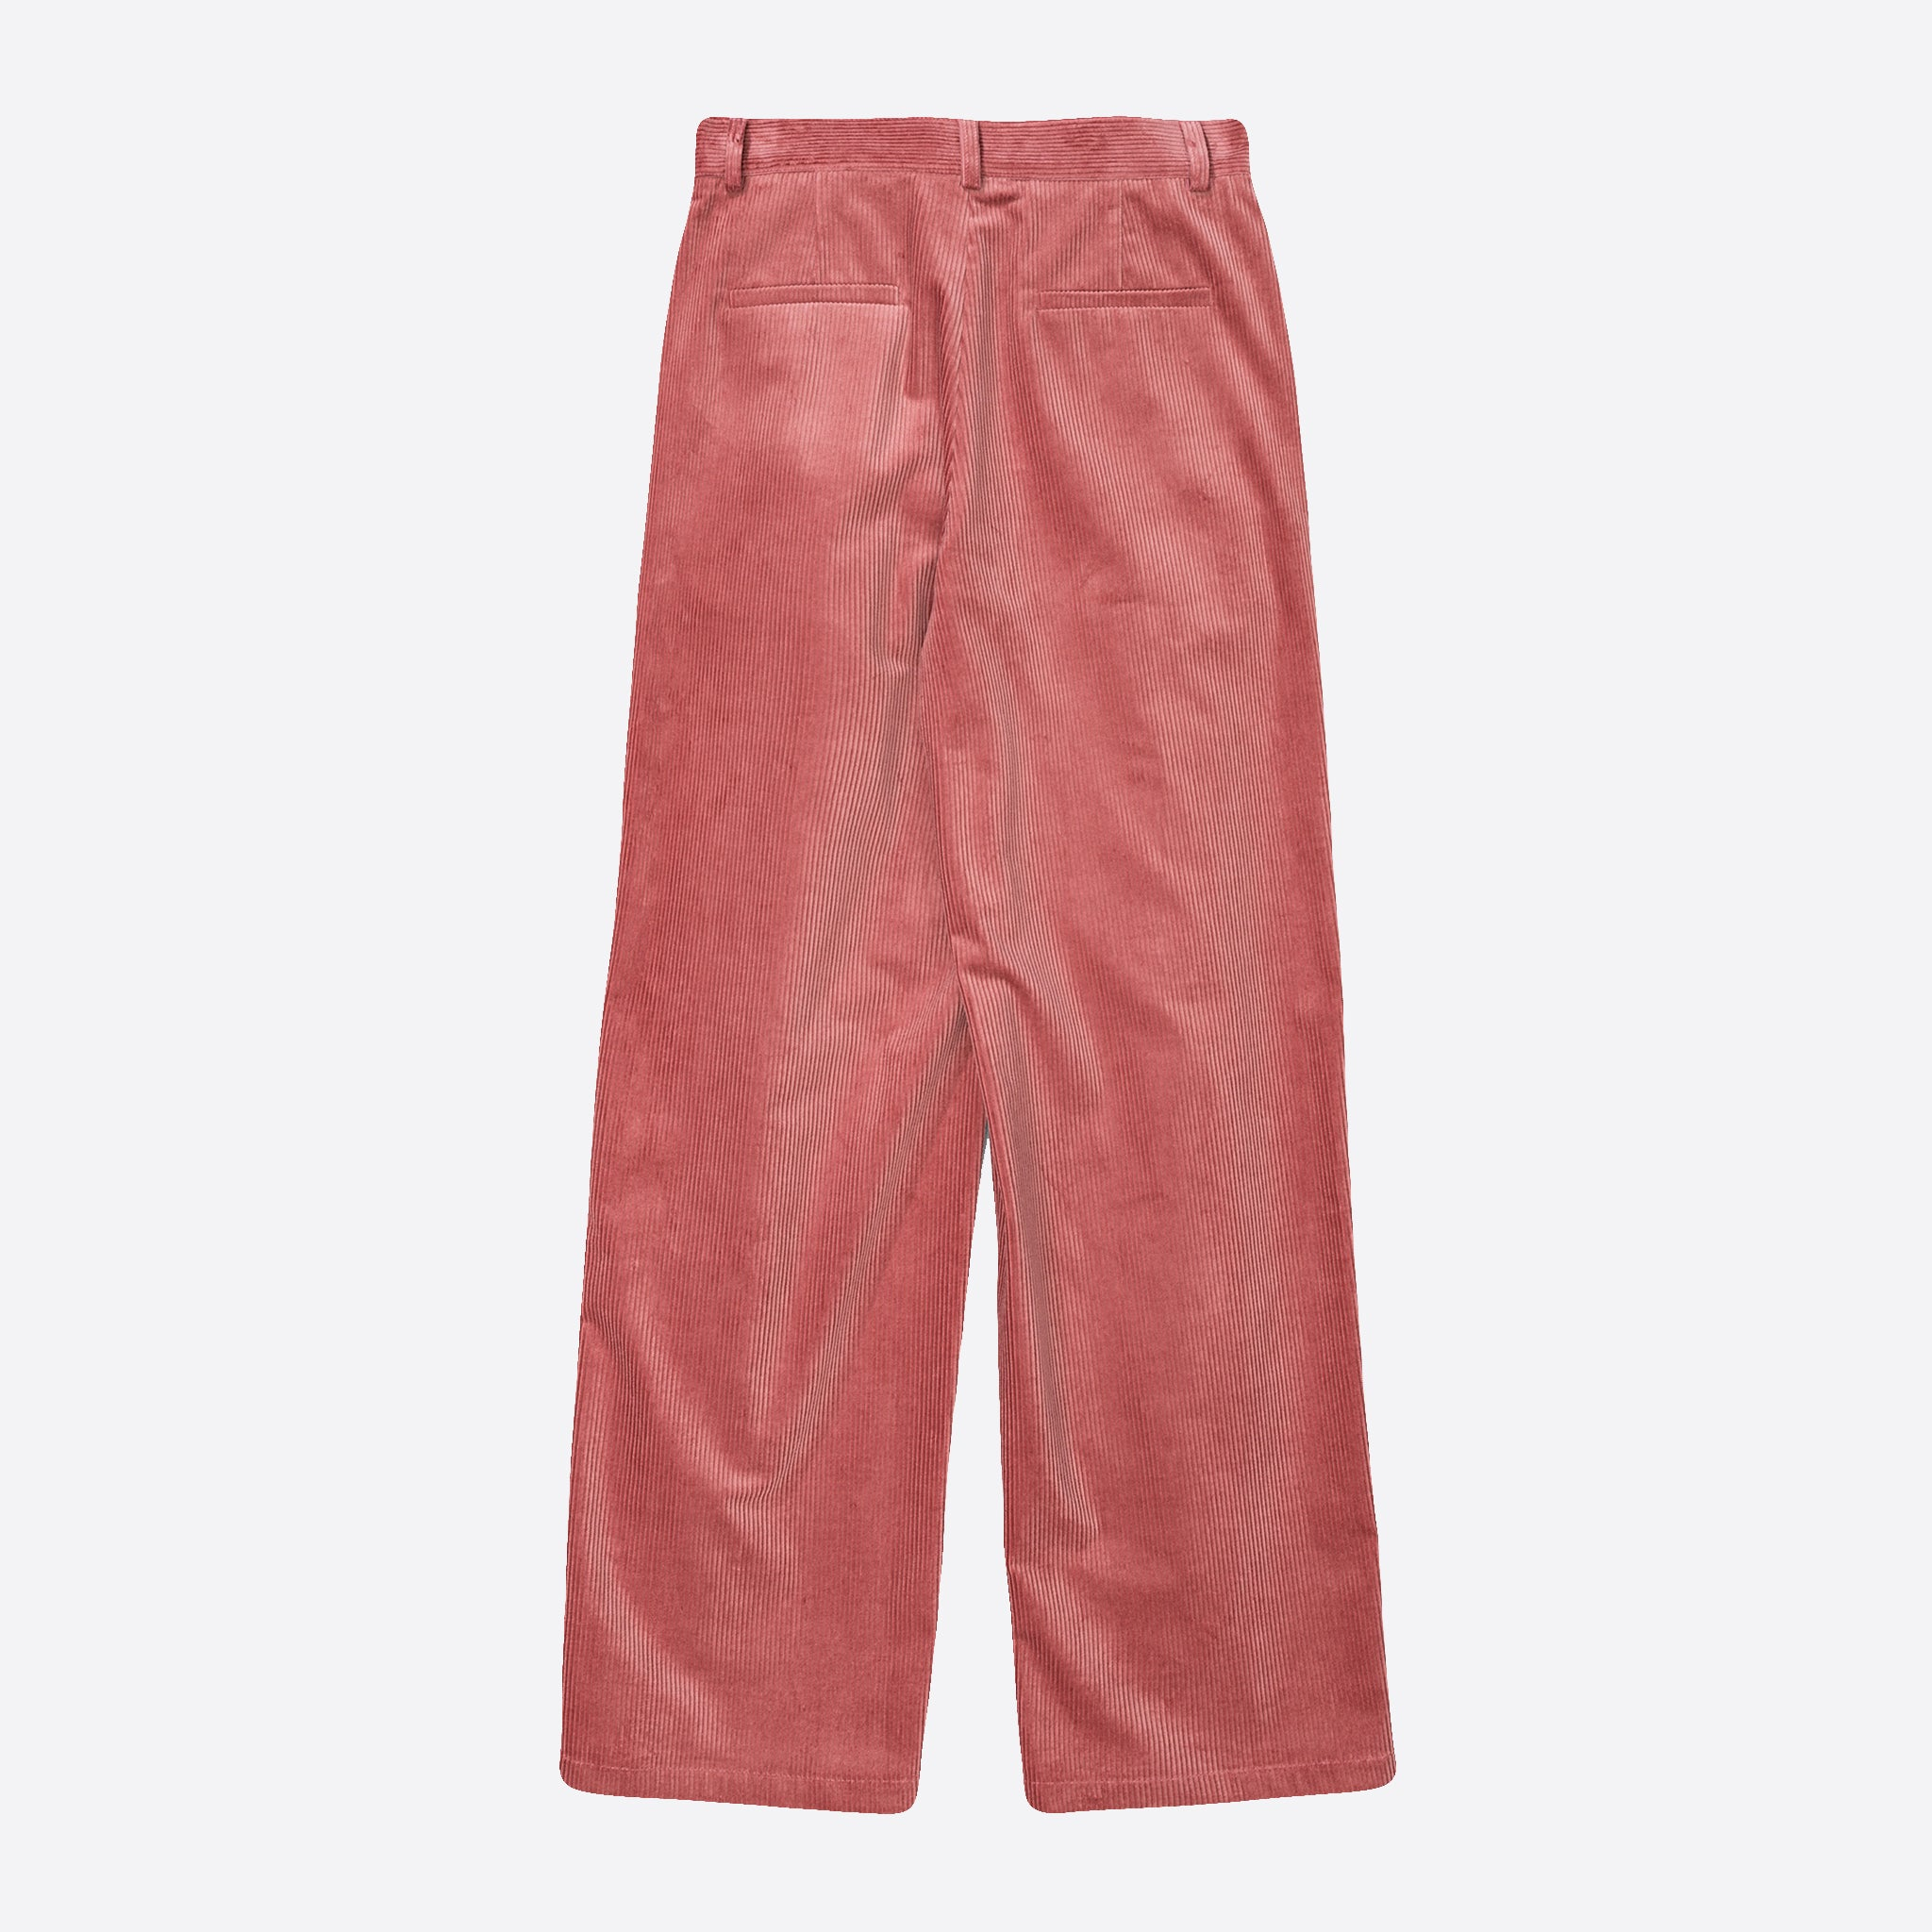 Norse Projects Jelena Cord Trousers in Rose Quartz